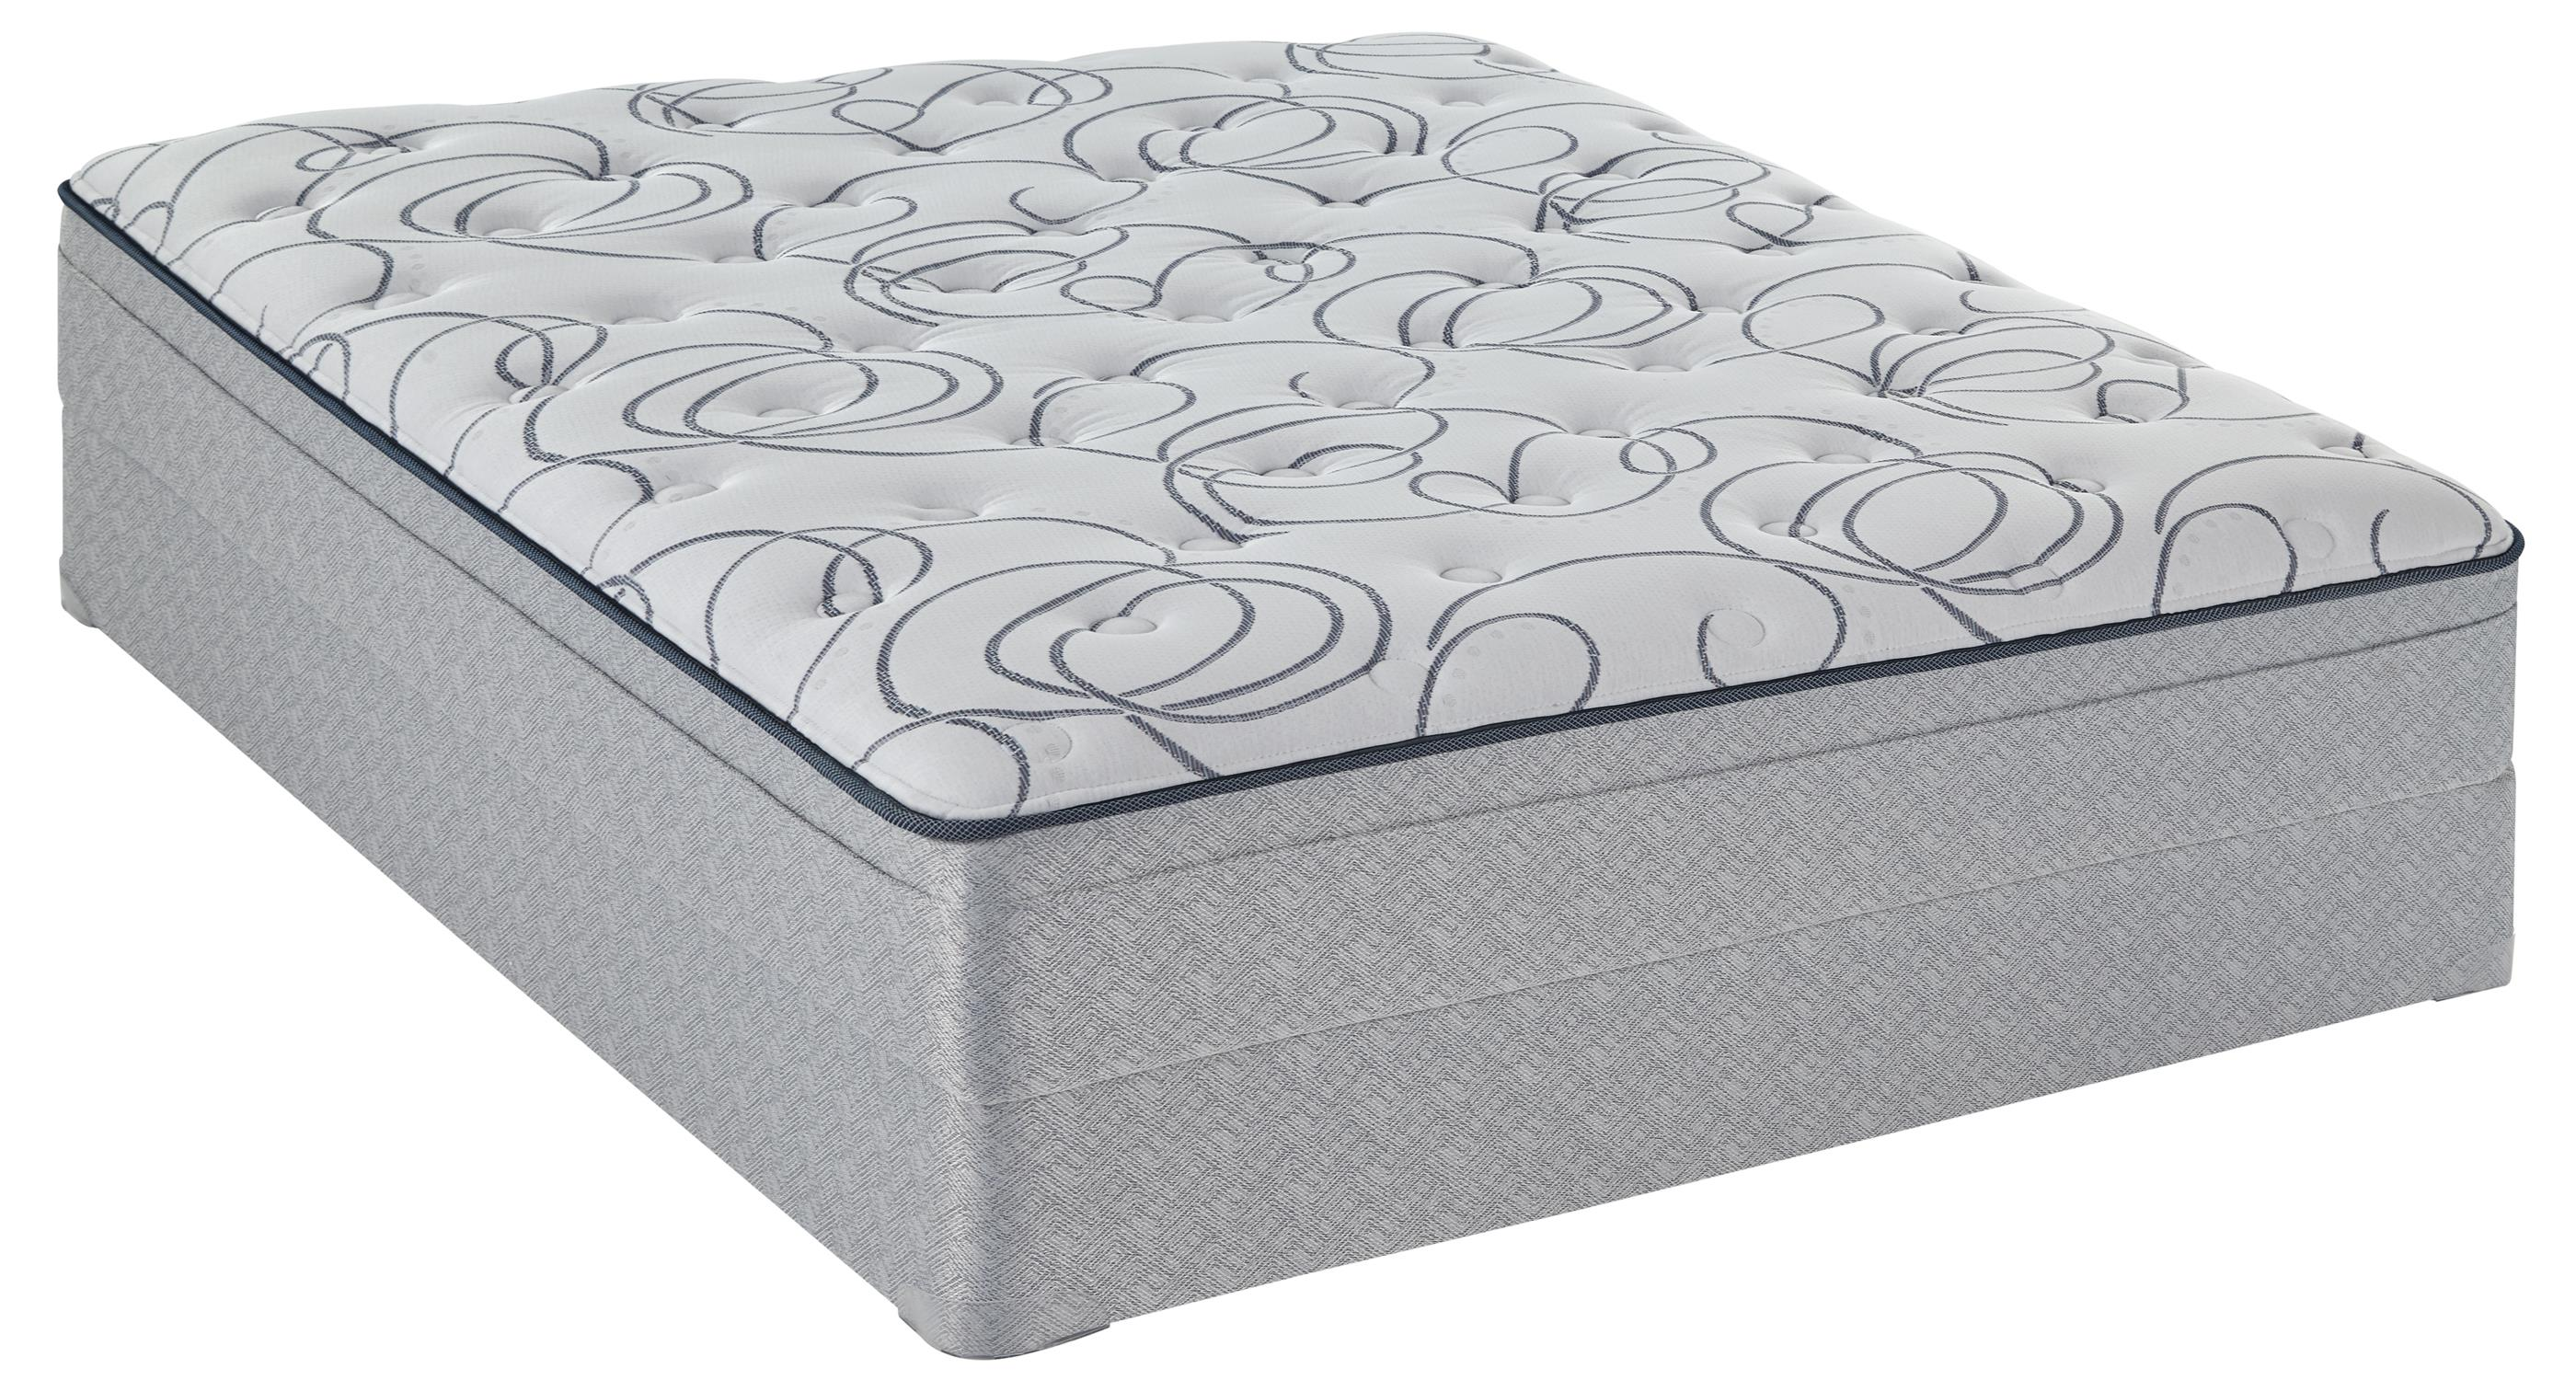 Sealy Turnbridge Full Plush ET Mattress Set - Item Number: PlushET-F+FoundationF